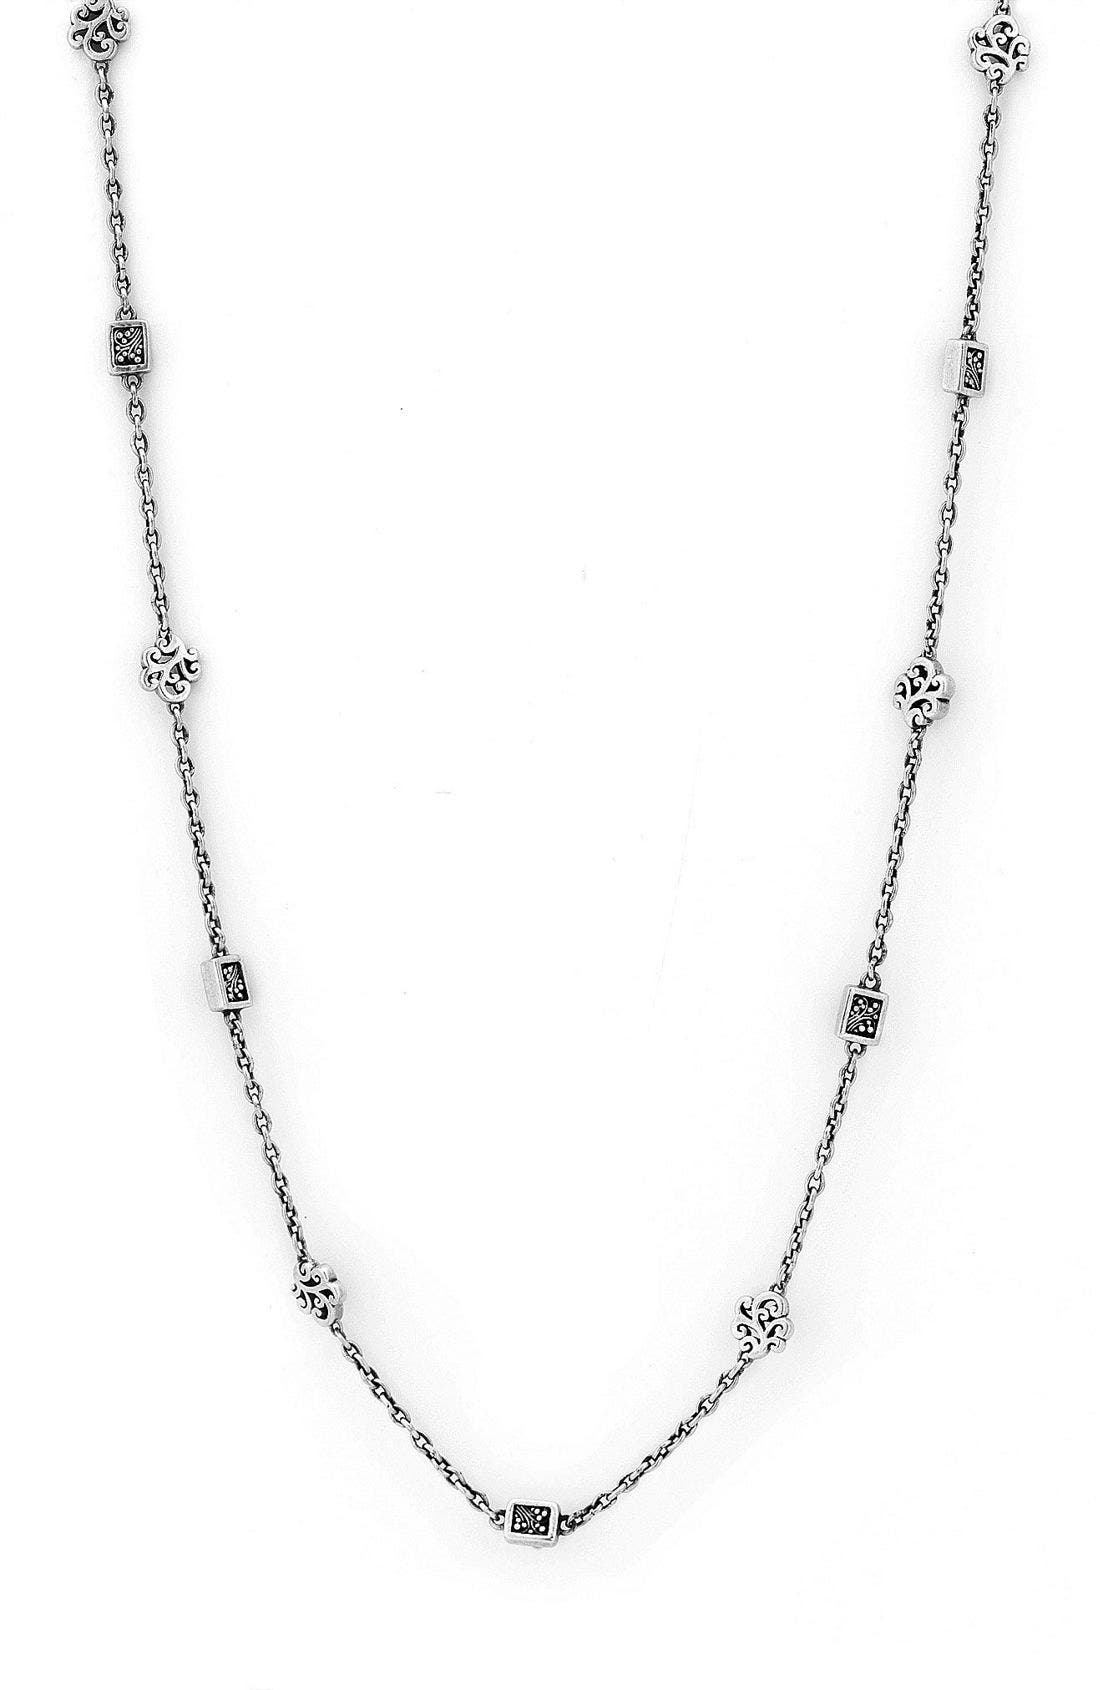 Alternate Image 1 Selected - Lois Hill Cutout & Granulated Long Strand Necklace